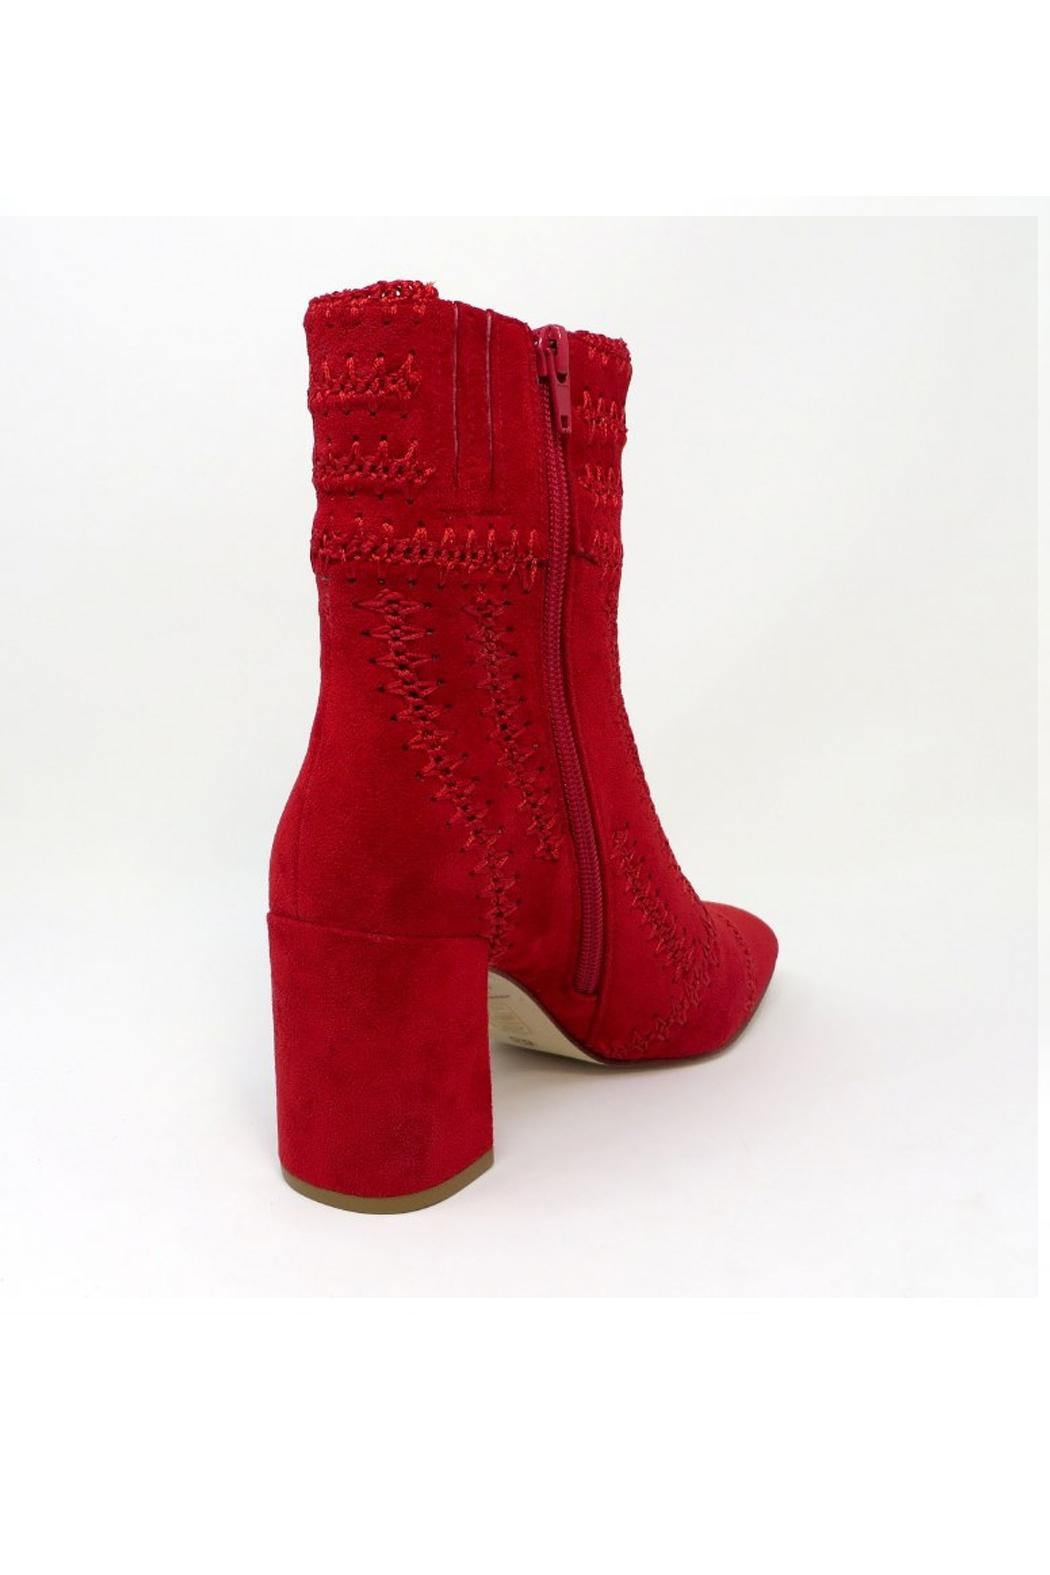 Jeffrey Campbell Red Suede Bootie - Front Full Image